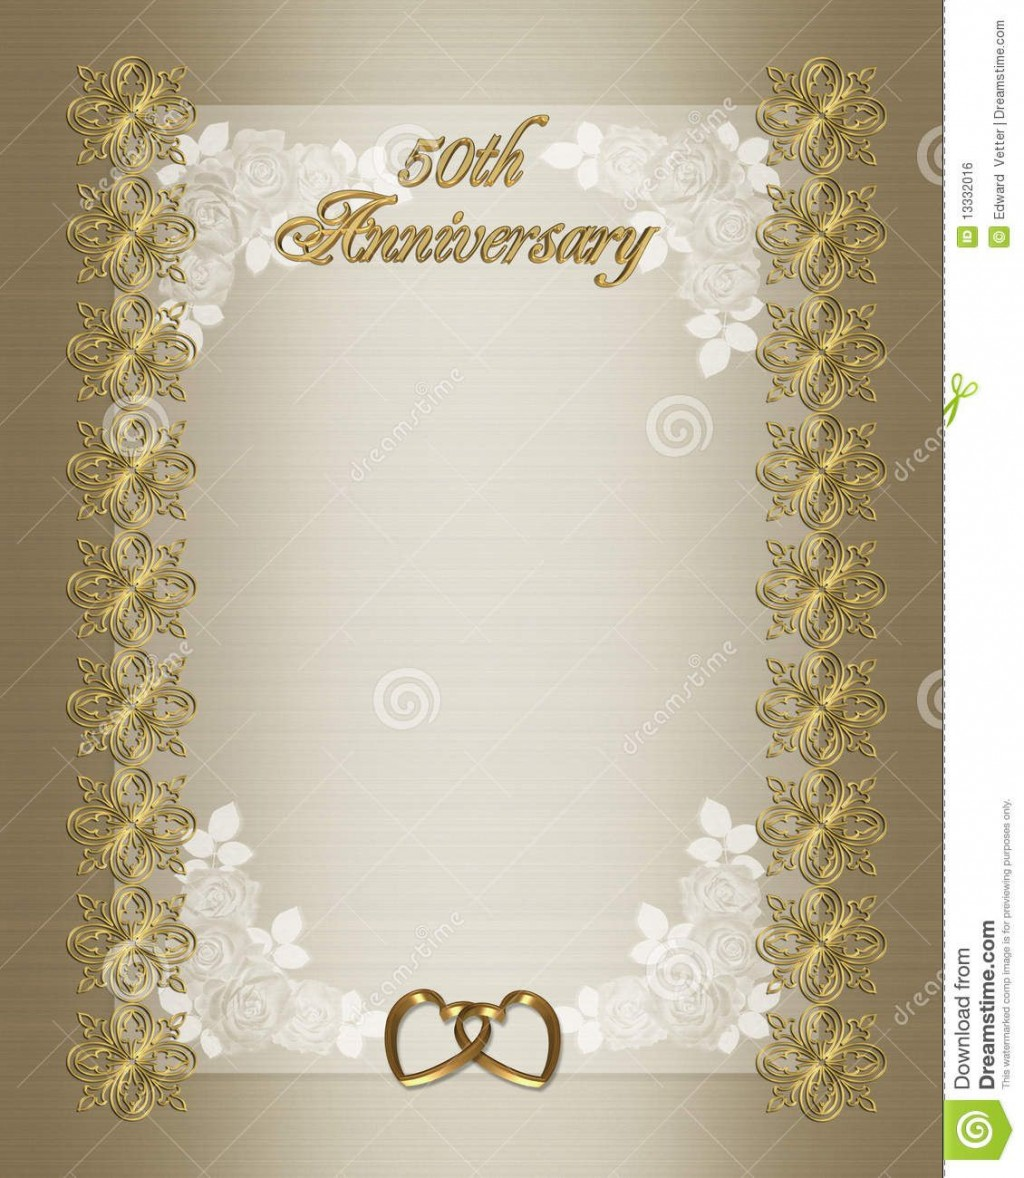 003 Fascinating Free 50th Anniversary Invitation Template For Word Picture Large